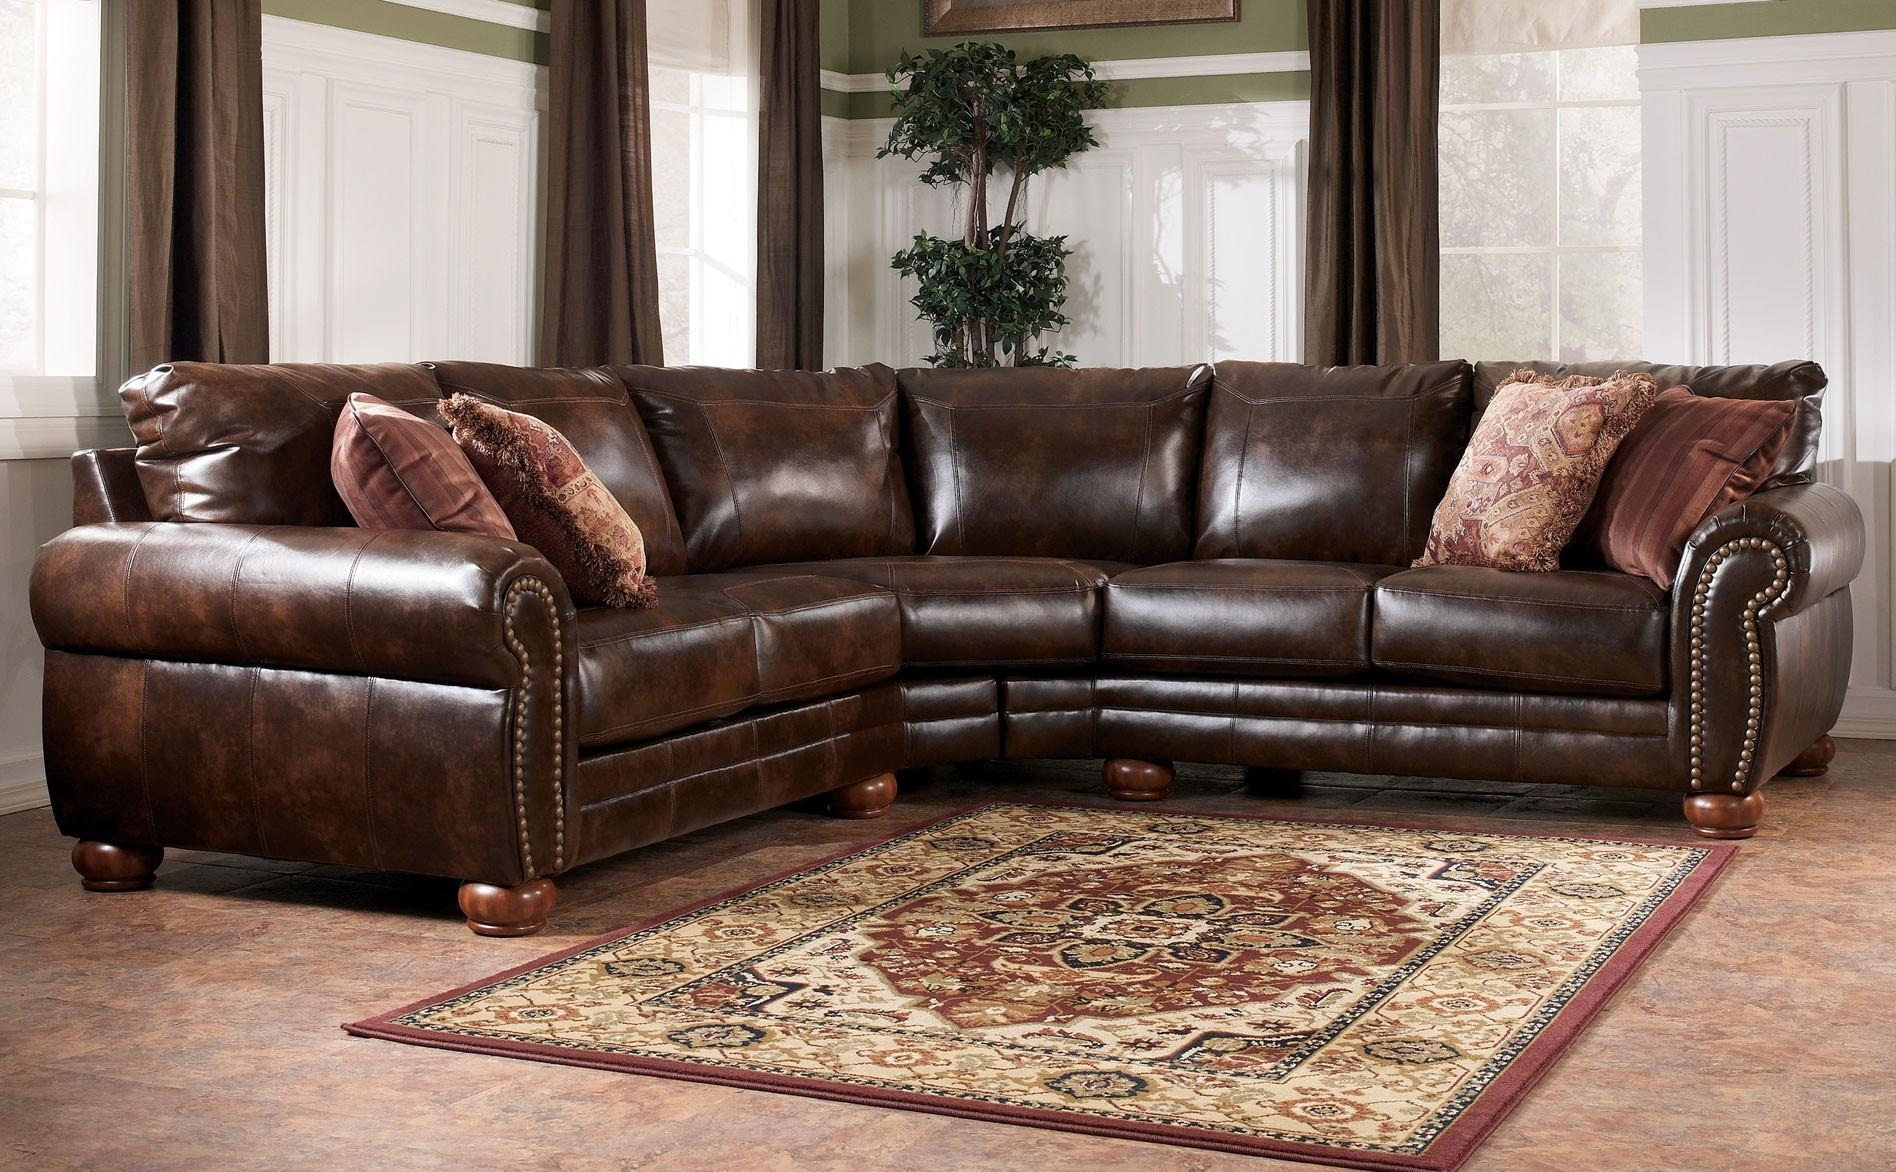 Fabric Ashley Furniture Sectional Ashley Furniture Fabric Sofa